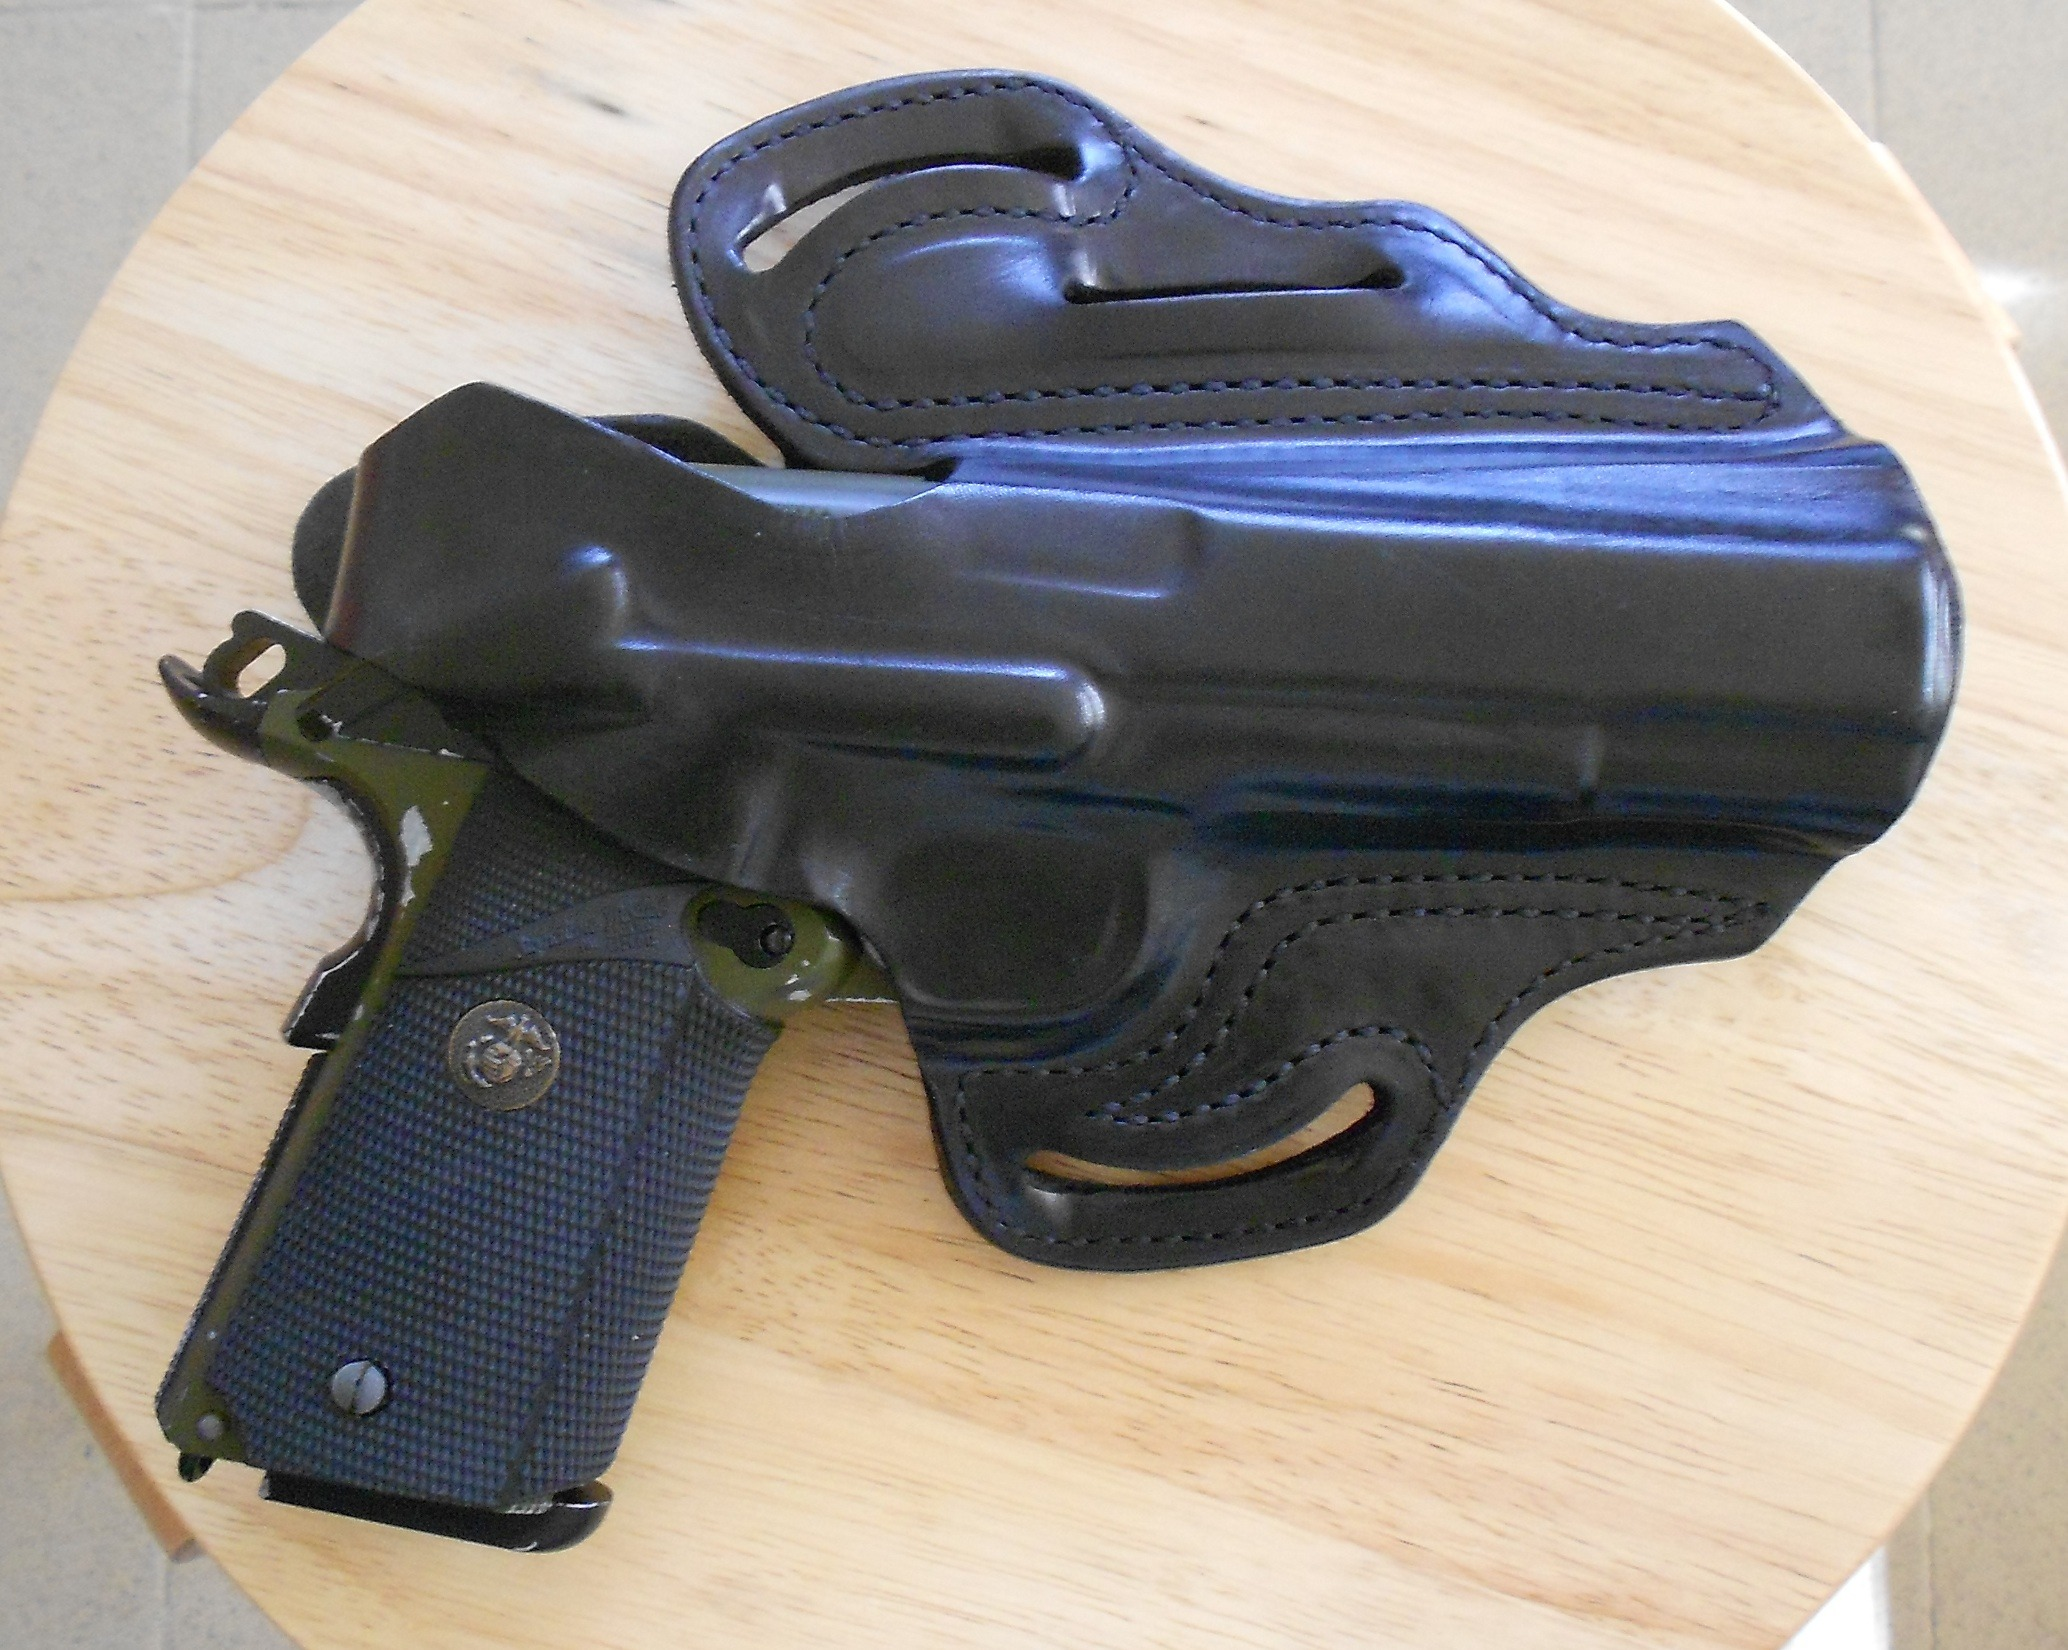 1911 pistol in the DeSantis 1CL. In this picture you can see that the top break strap covers and protects the ambidextrous safety from being accidentally snagged off. The top break strap is also shaped to provide some protection for the rear sight. The top strap sits secured between the hammer and the firing pin providing an additional safety barrier to ensure there will be no accidental discharge.